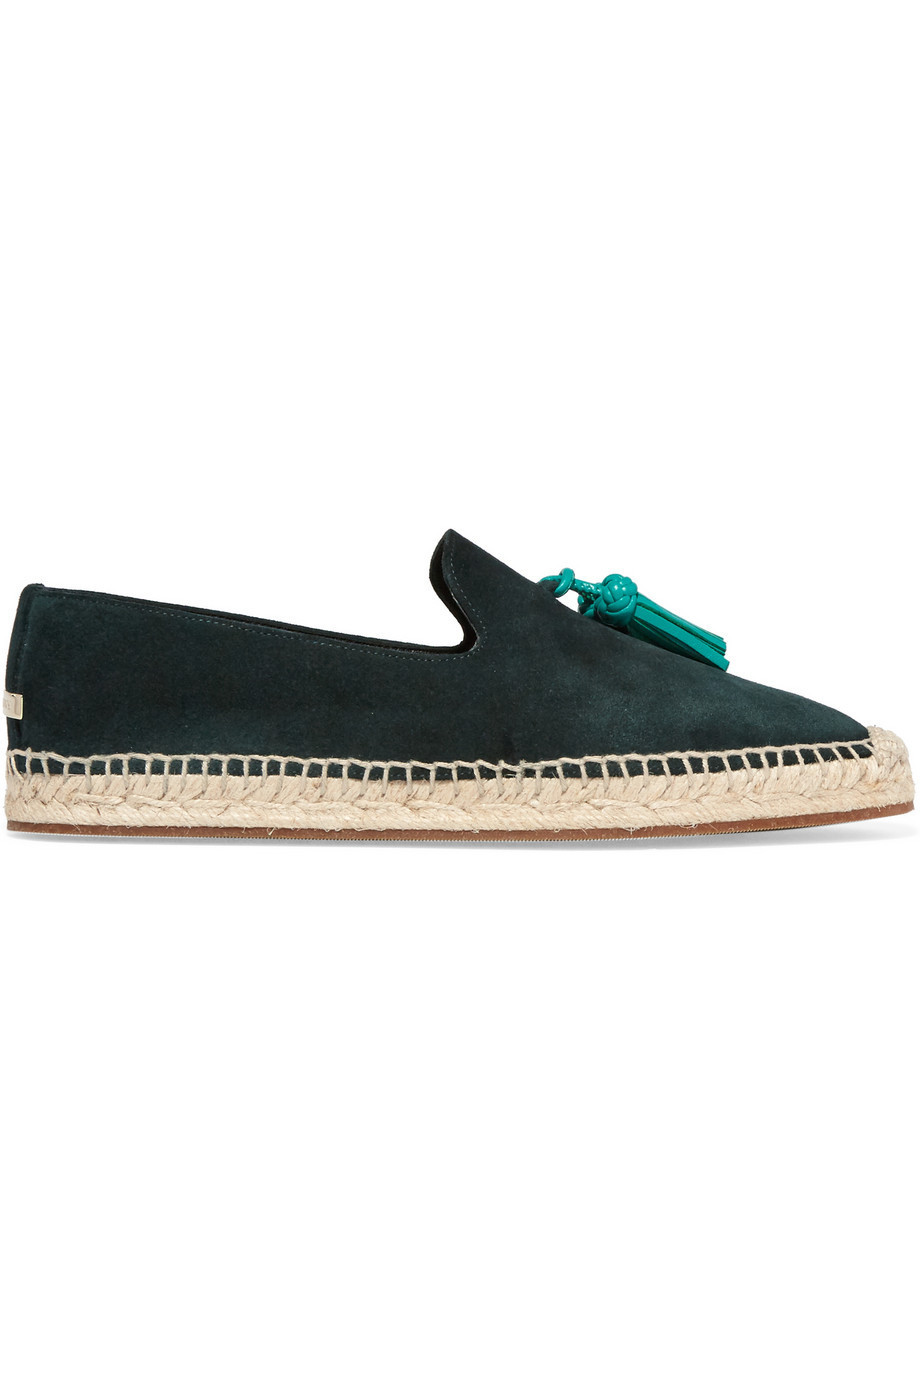 reputable site 0b368 04246 Burberry London London Tasseled Leather and Suede Espadrilles in green